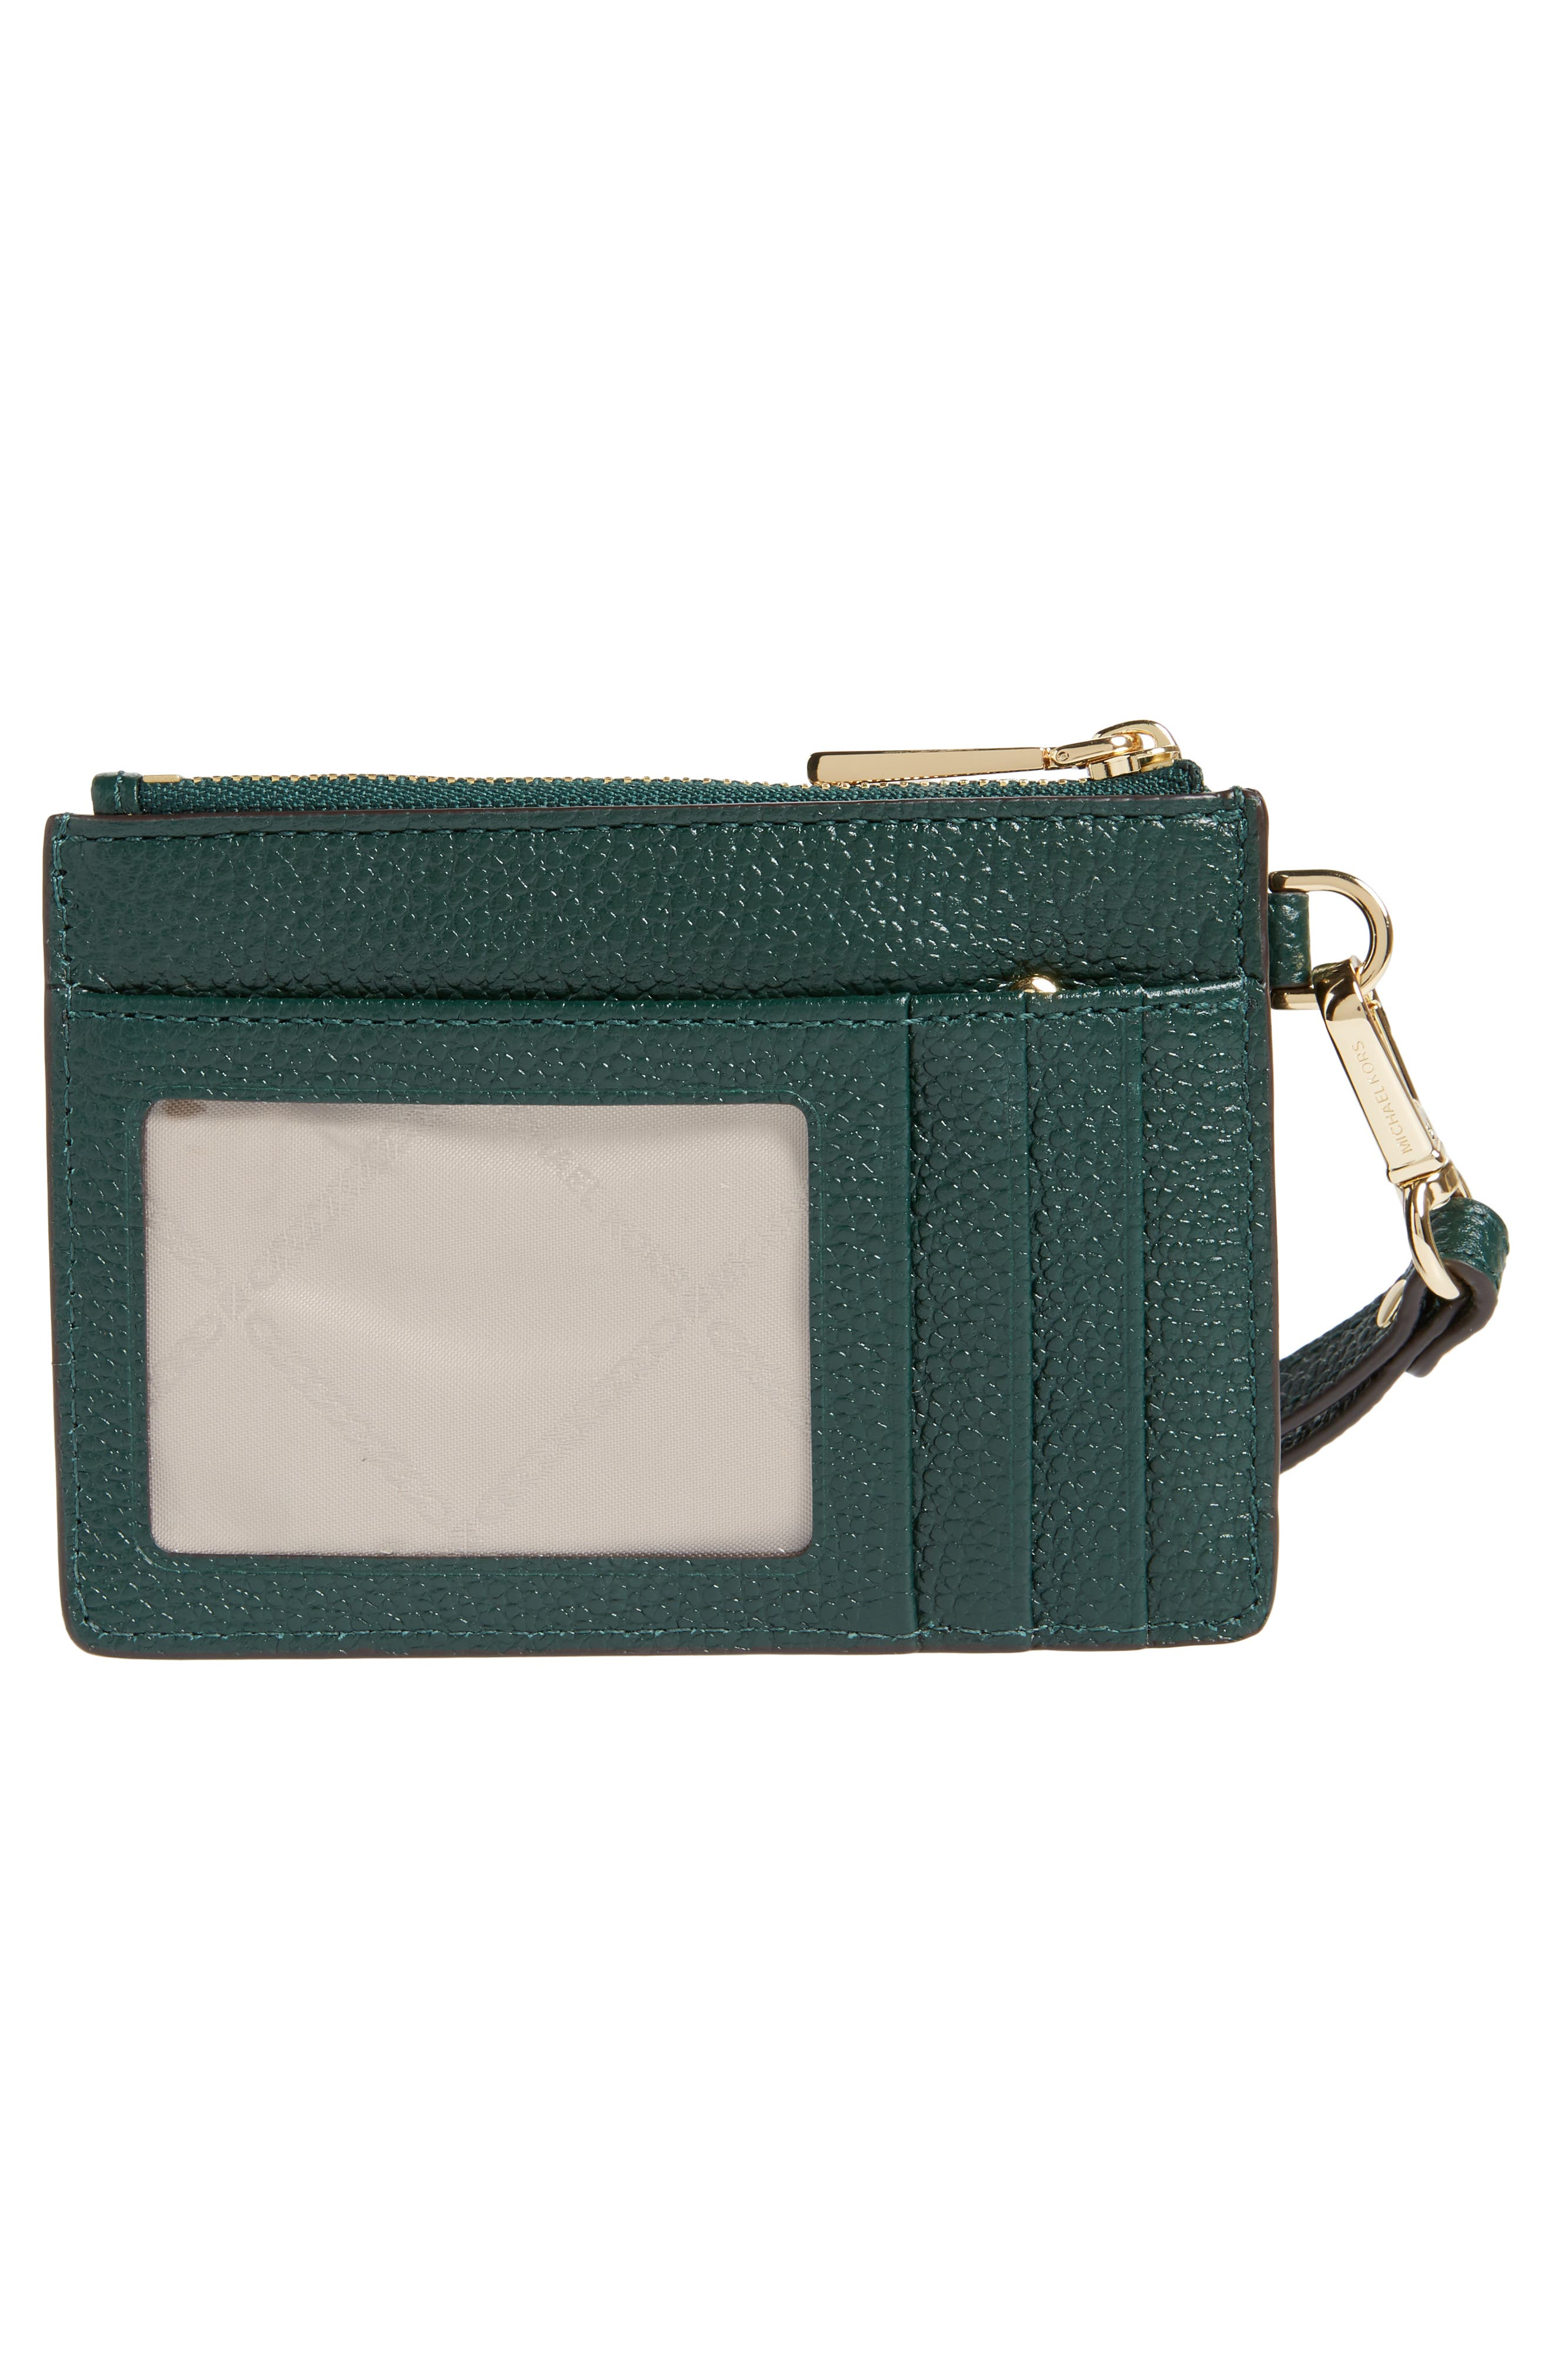 Small Mercer Leather RFID Coin Purse,                             Alternate thumbnail 3, color,                             300